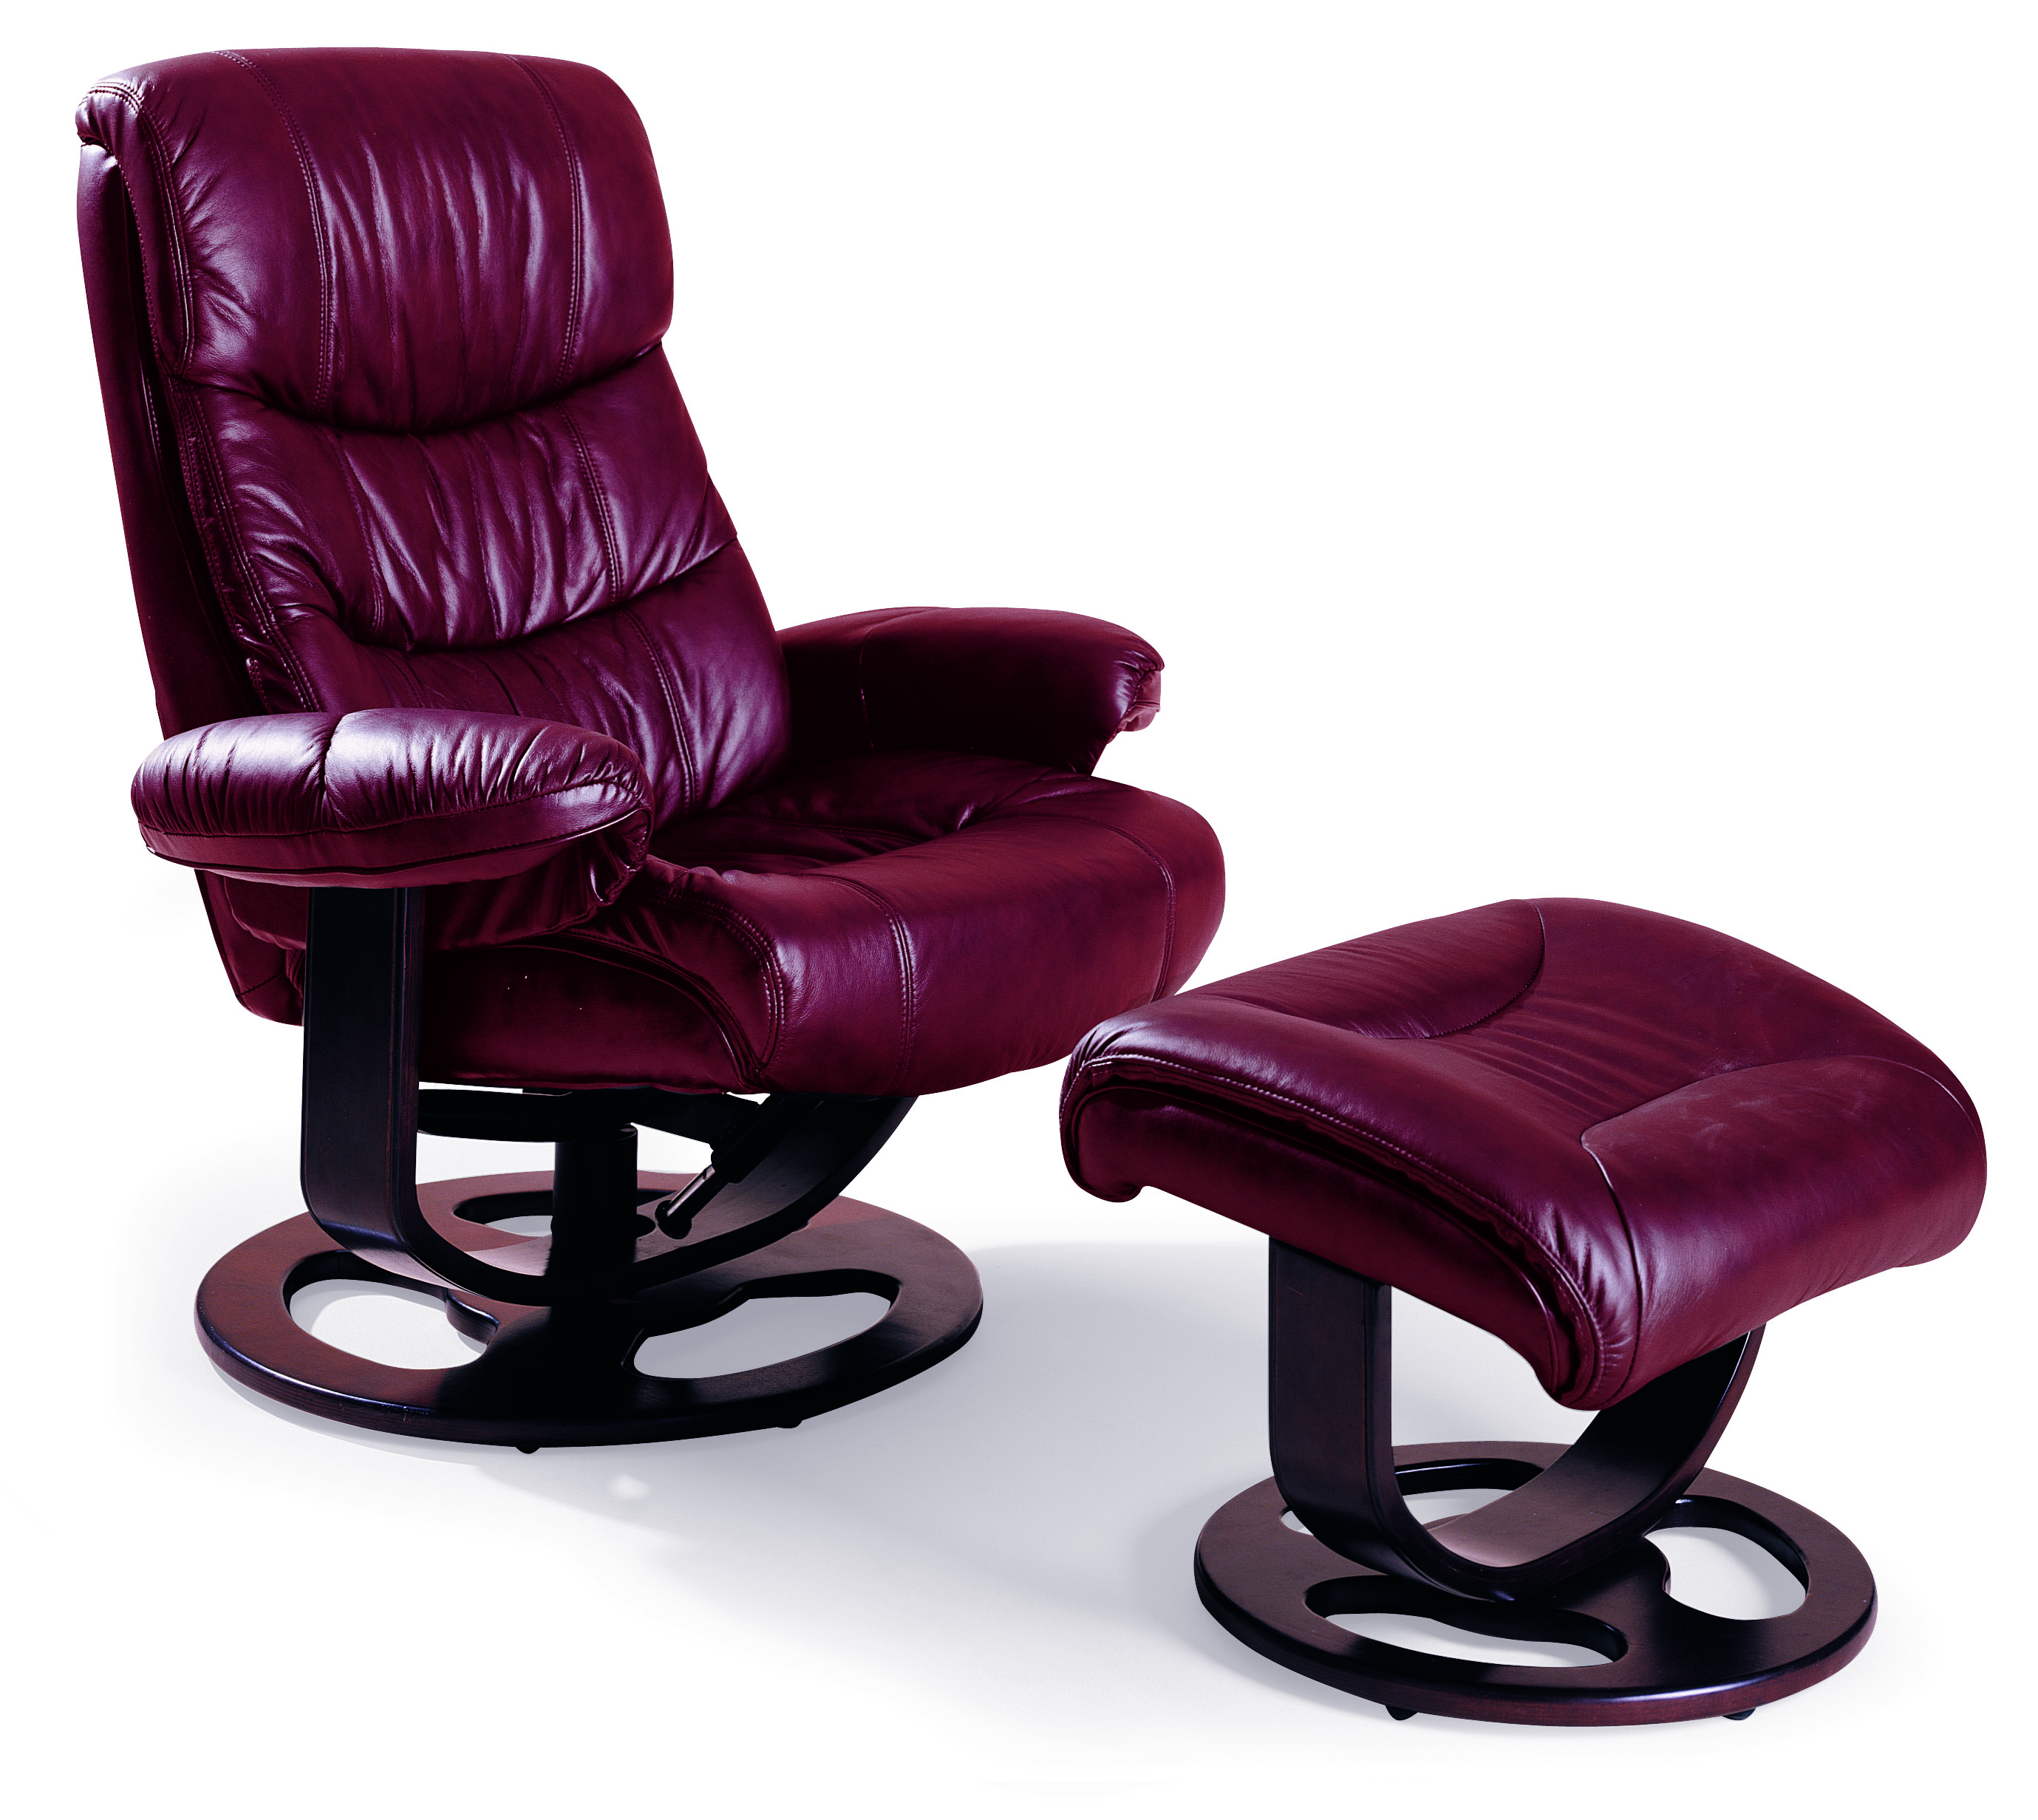 2758x2463 Recliner Chairs With Ottoman